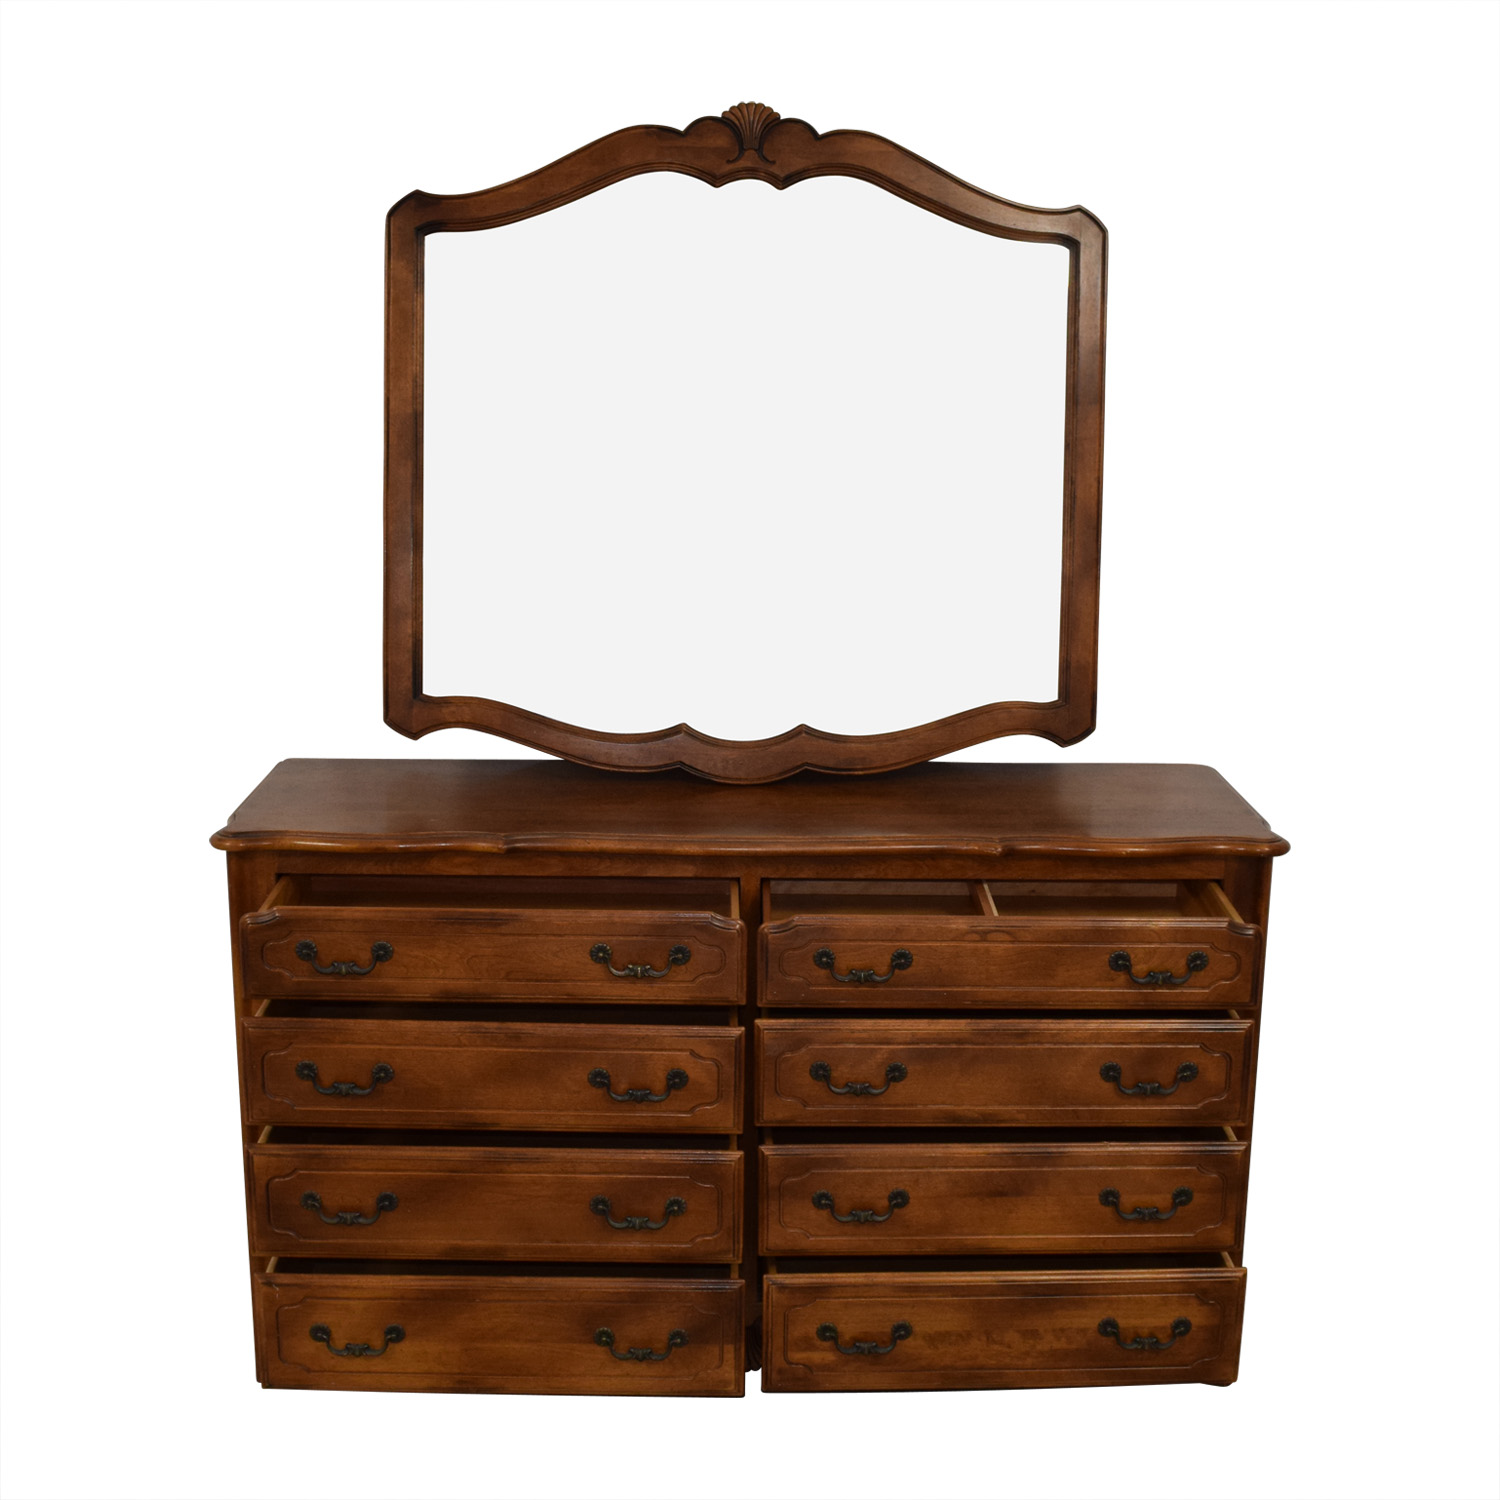 Wood Eight-Drawer Dresser with Mirror dimensions